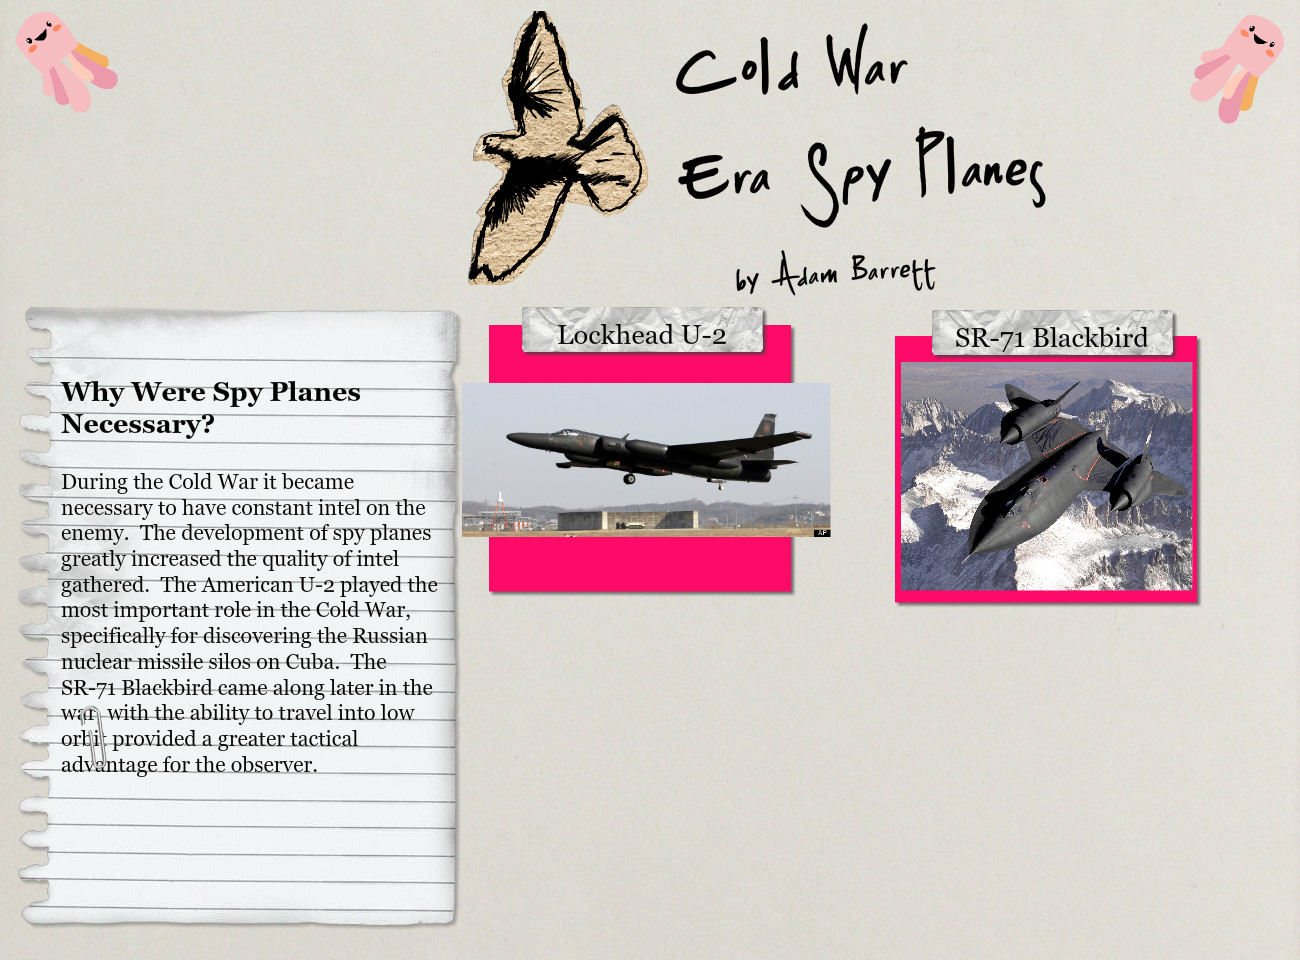 Cold War Spy Planes